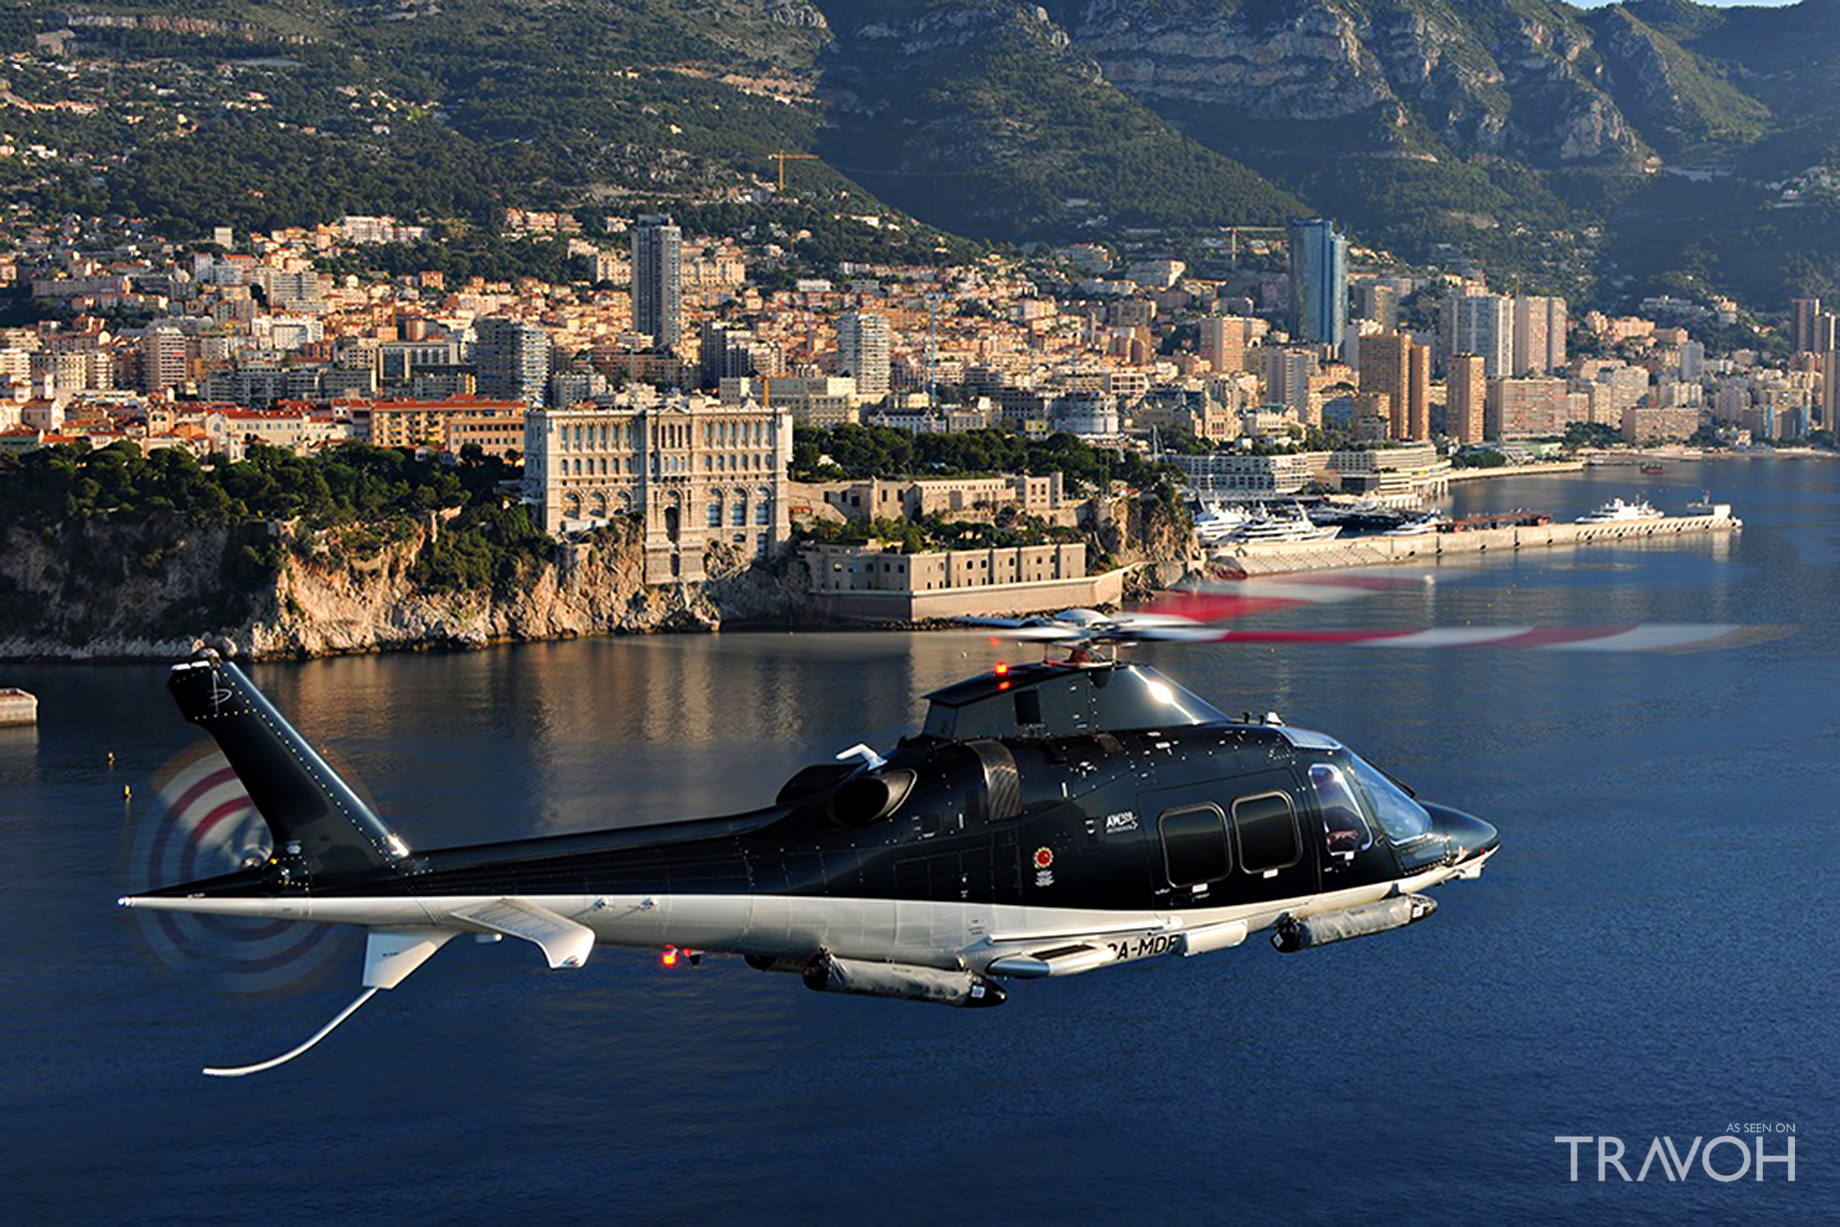 Skycam Helicopters - Private Luxury Flights to the Island of Porquerolles Island, France